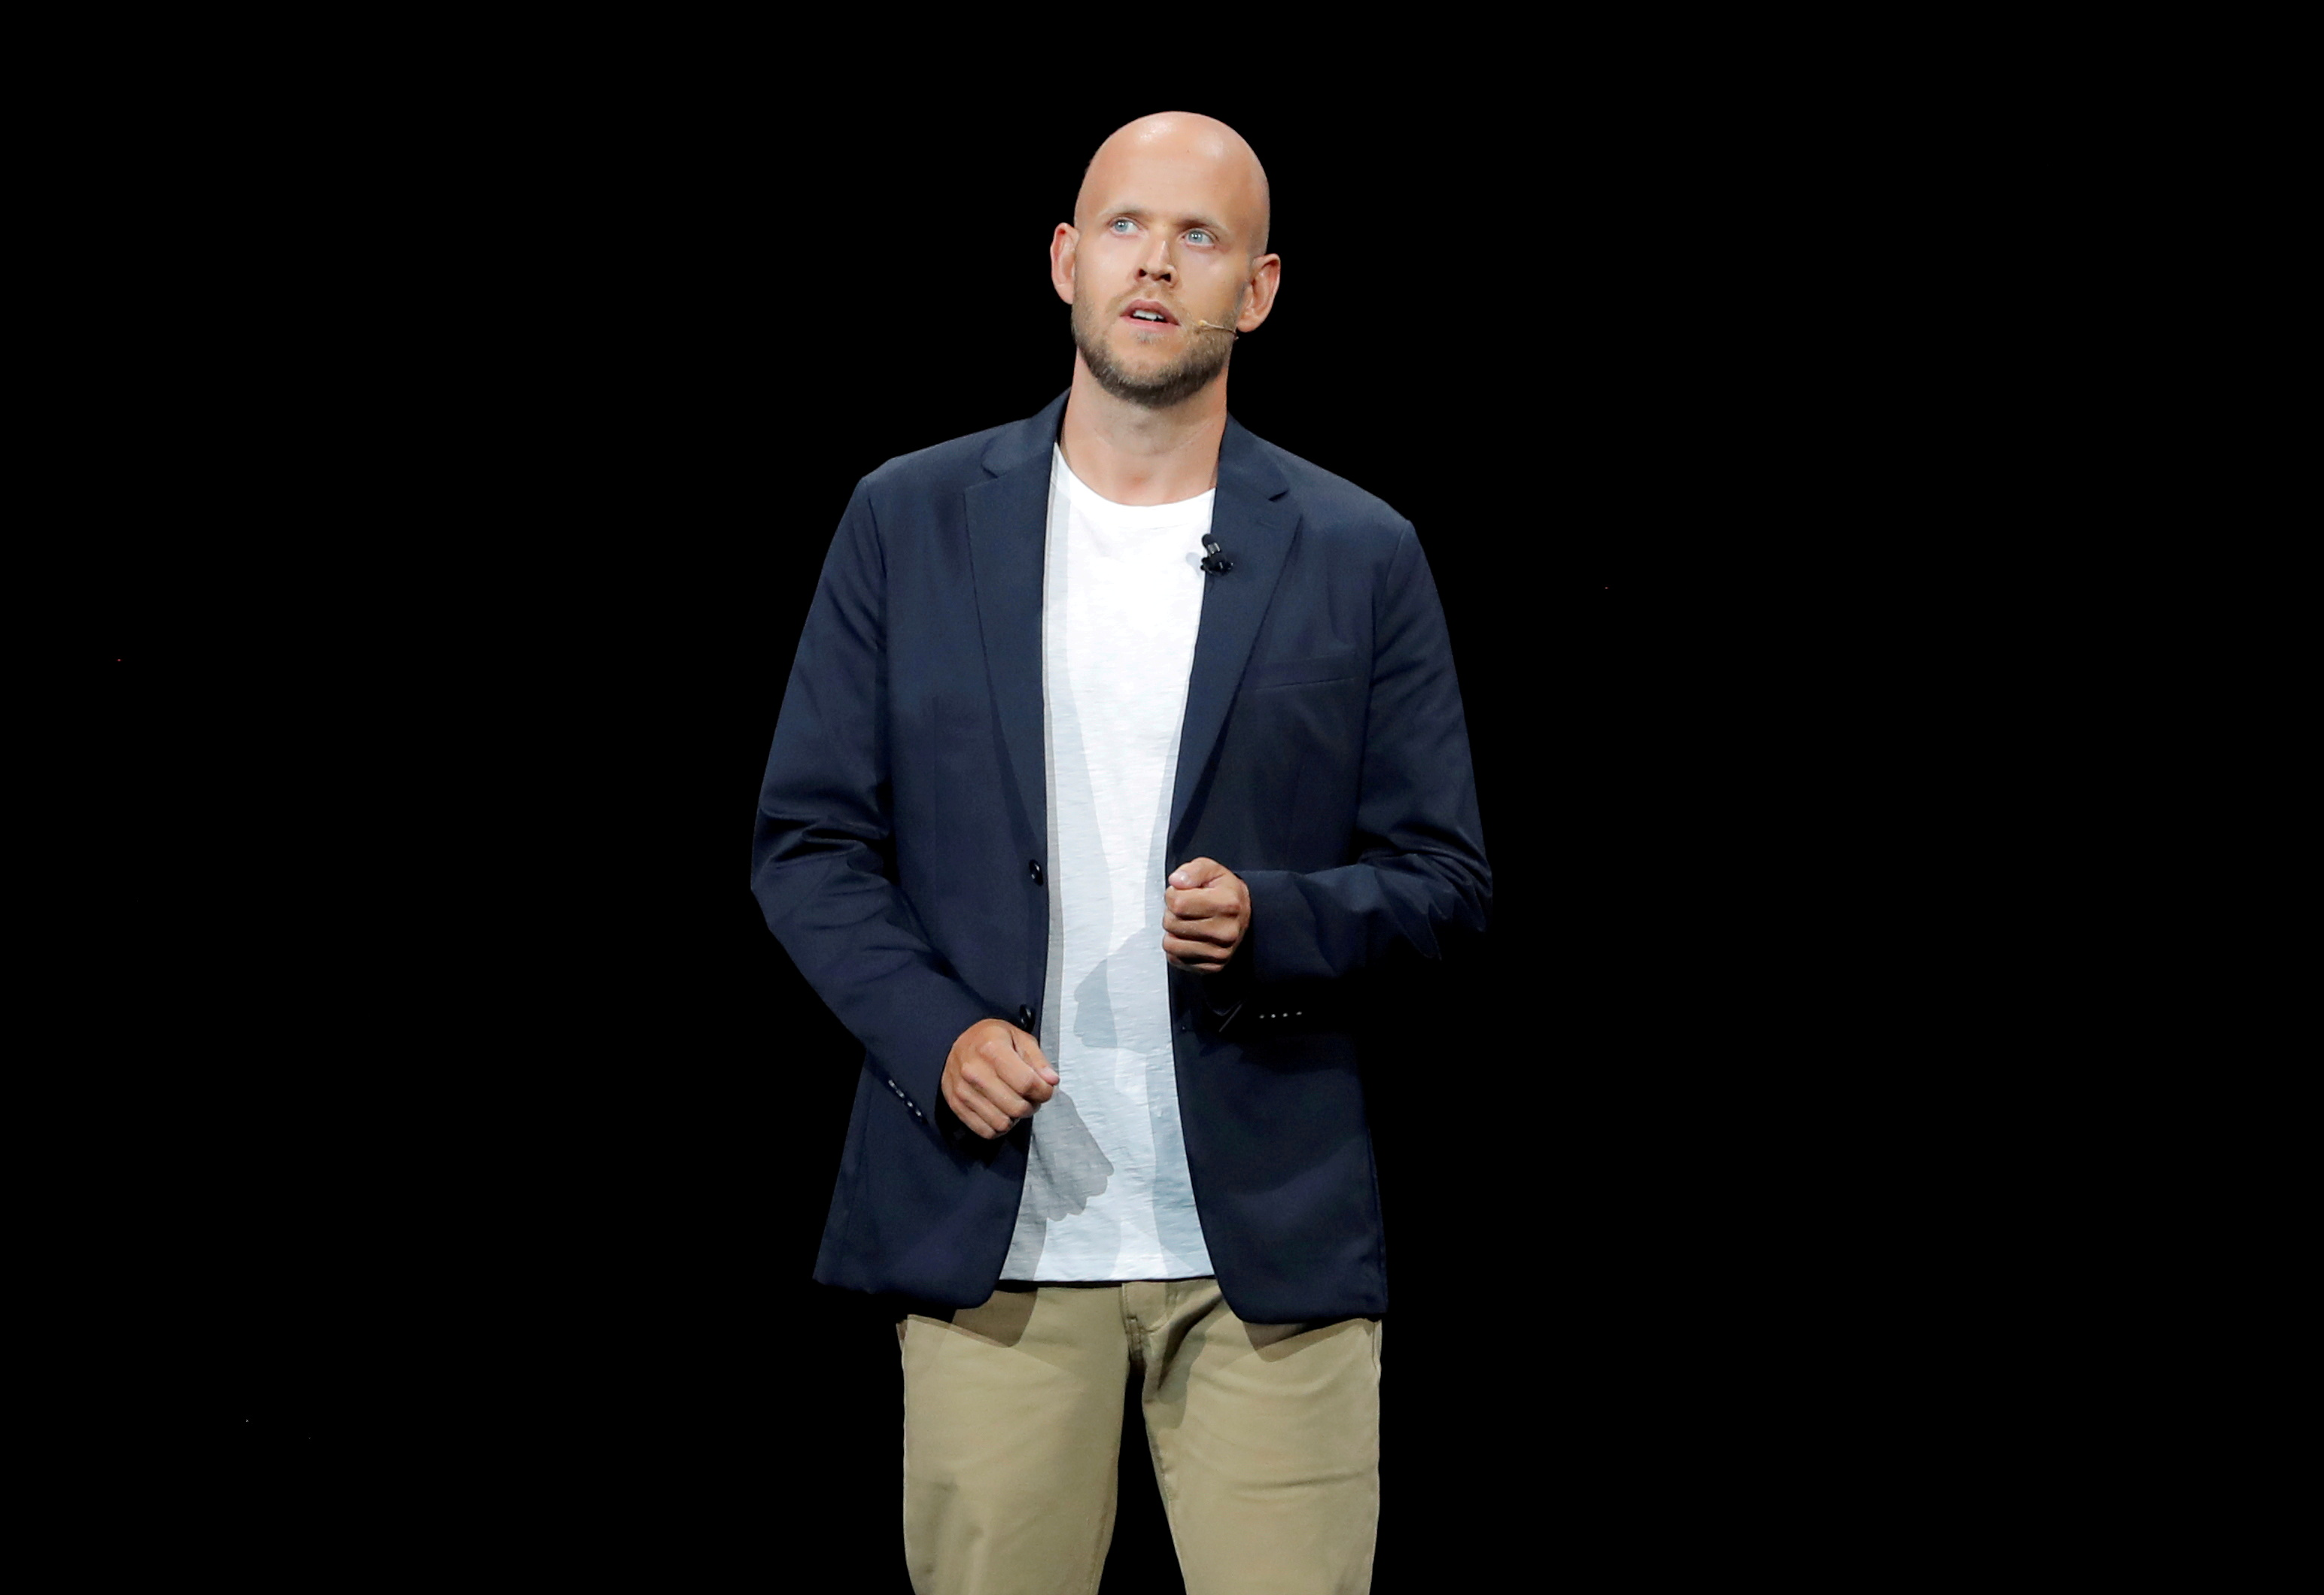 Daniel Ek, CEO of Spotify speaks at an event in Brooklyn, New York, U.S., August 9, 2018. REUTERS/Lucas Jackson/File Photo